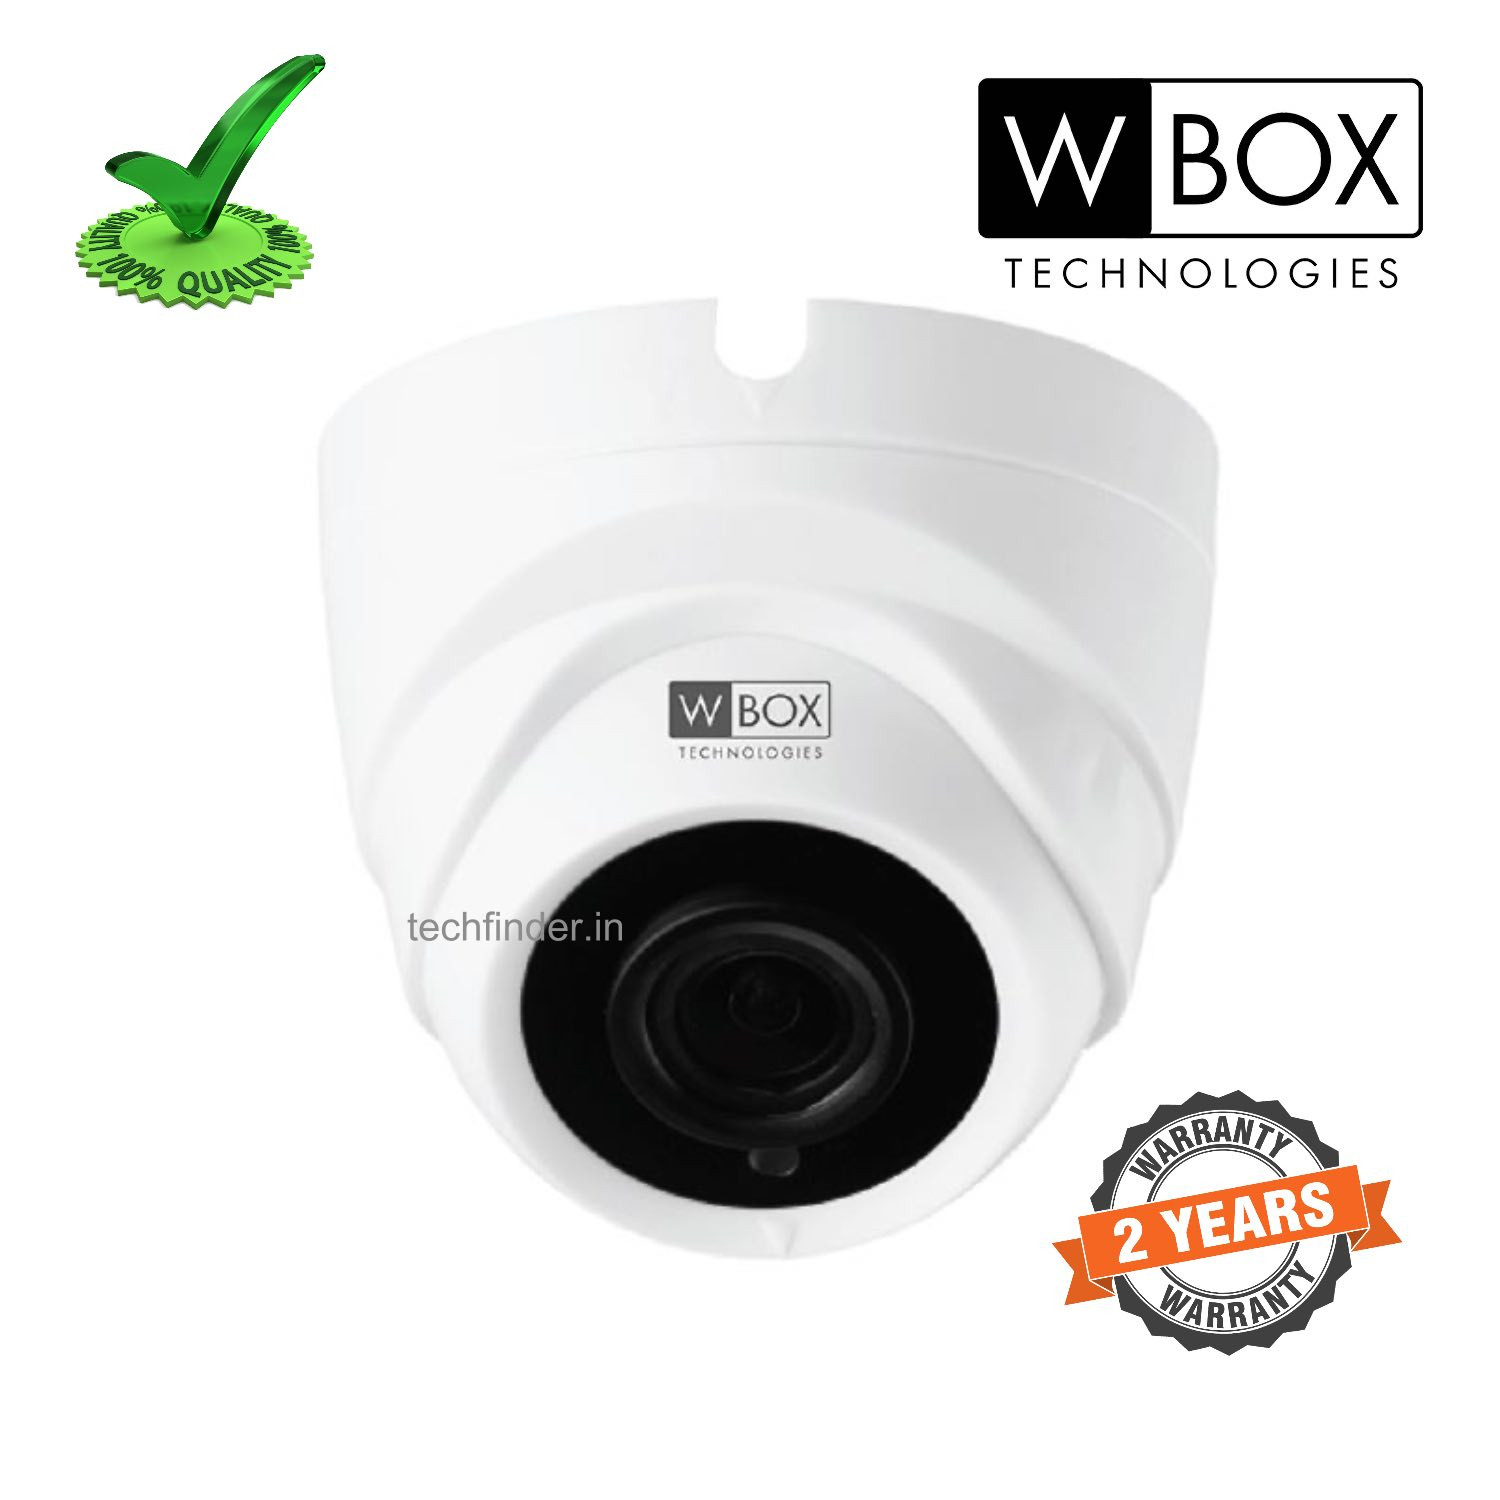 W Box WBC0E-CLHD5R2FPLE AHD 5mp Body IR HD Dome Camera